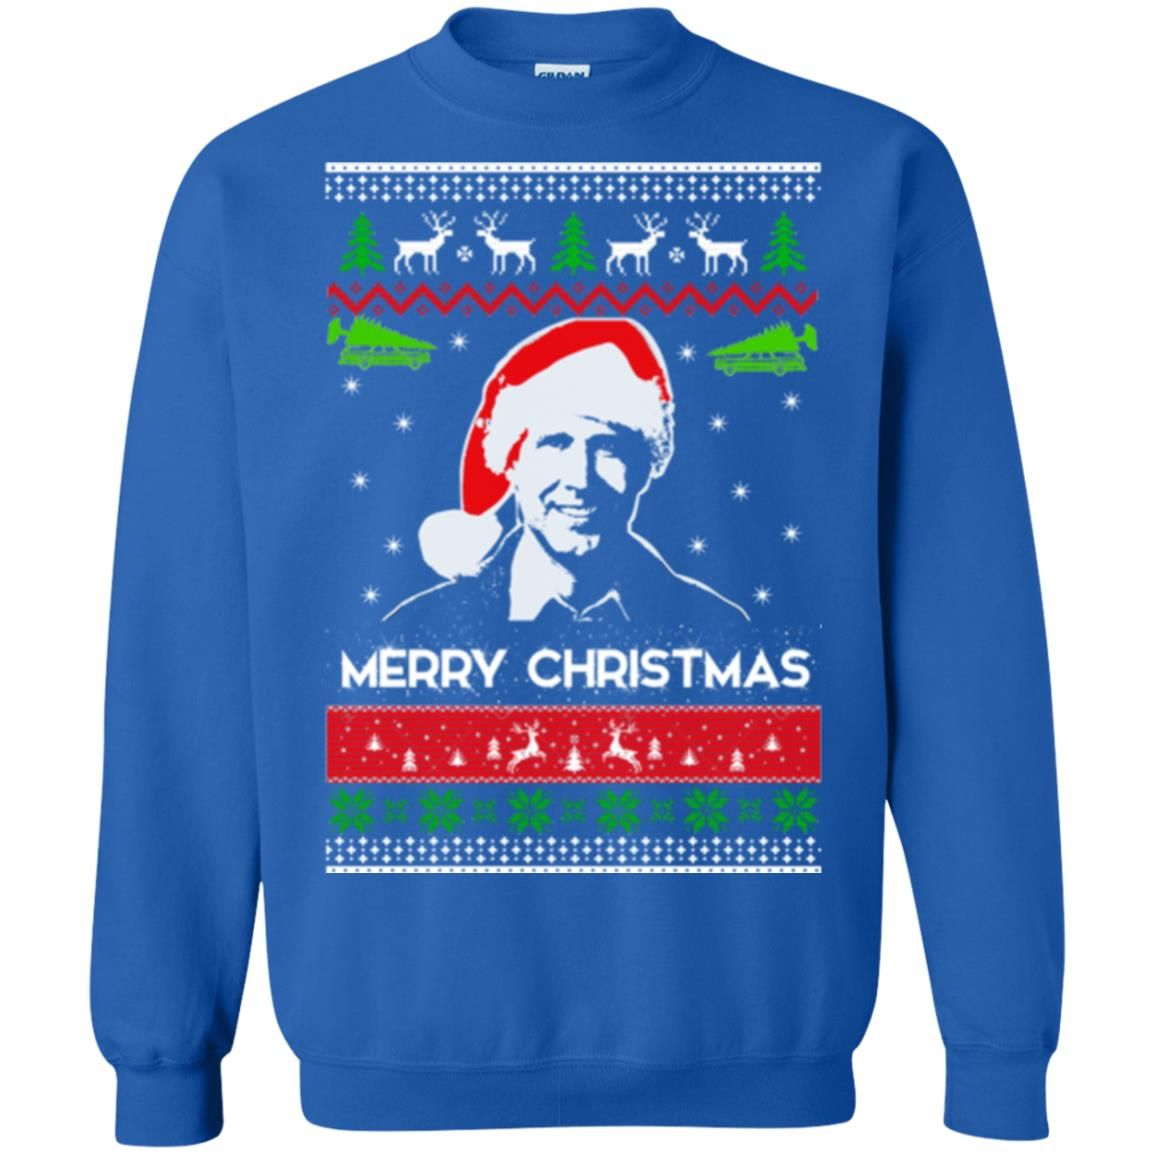 image 1715 - Clark Griswold: Merry Christmas ugly Sweatshirt, long sleeve